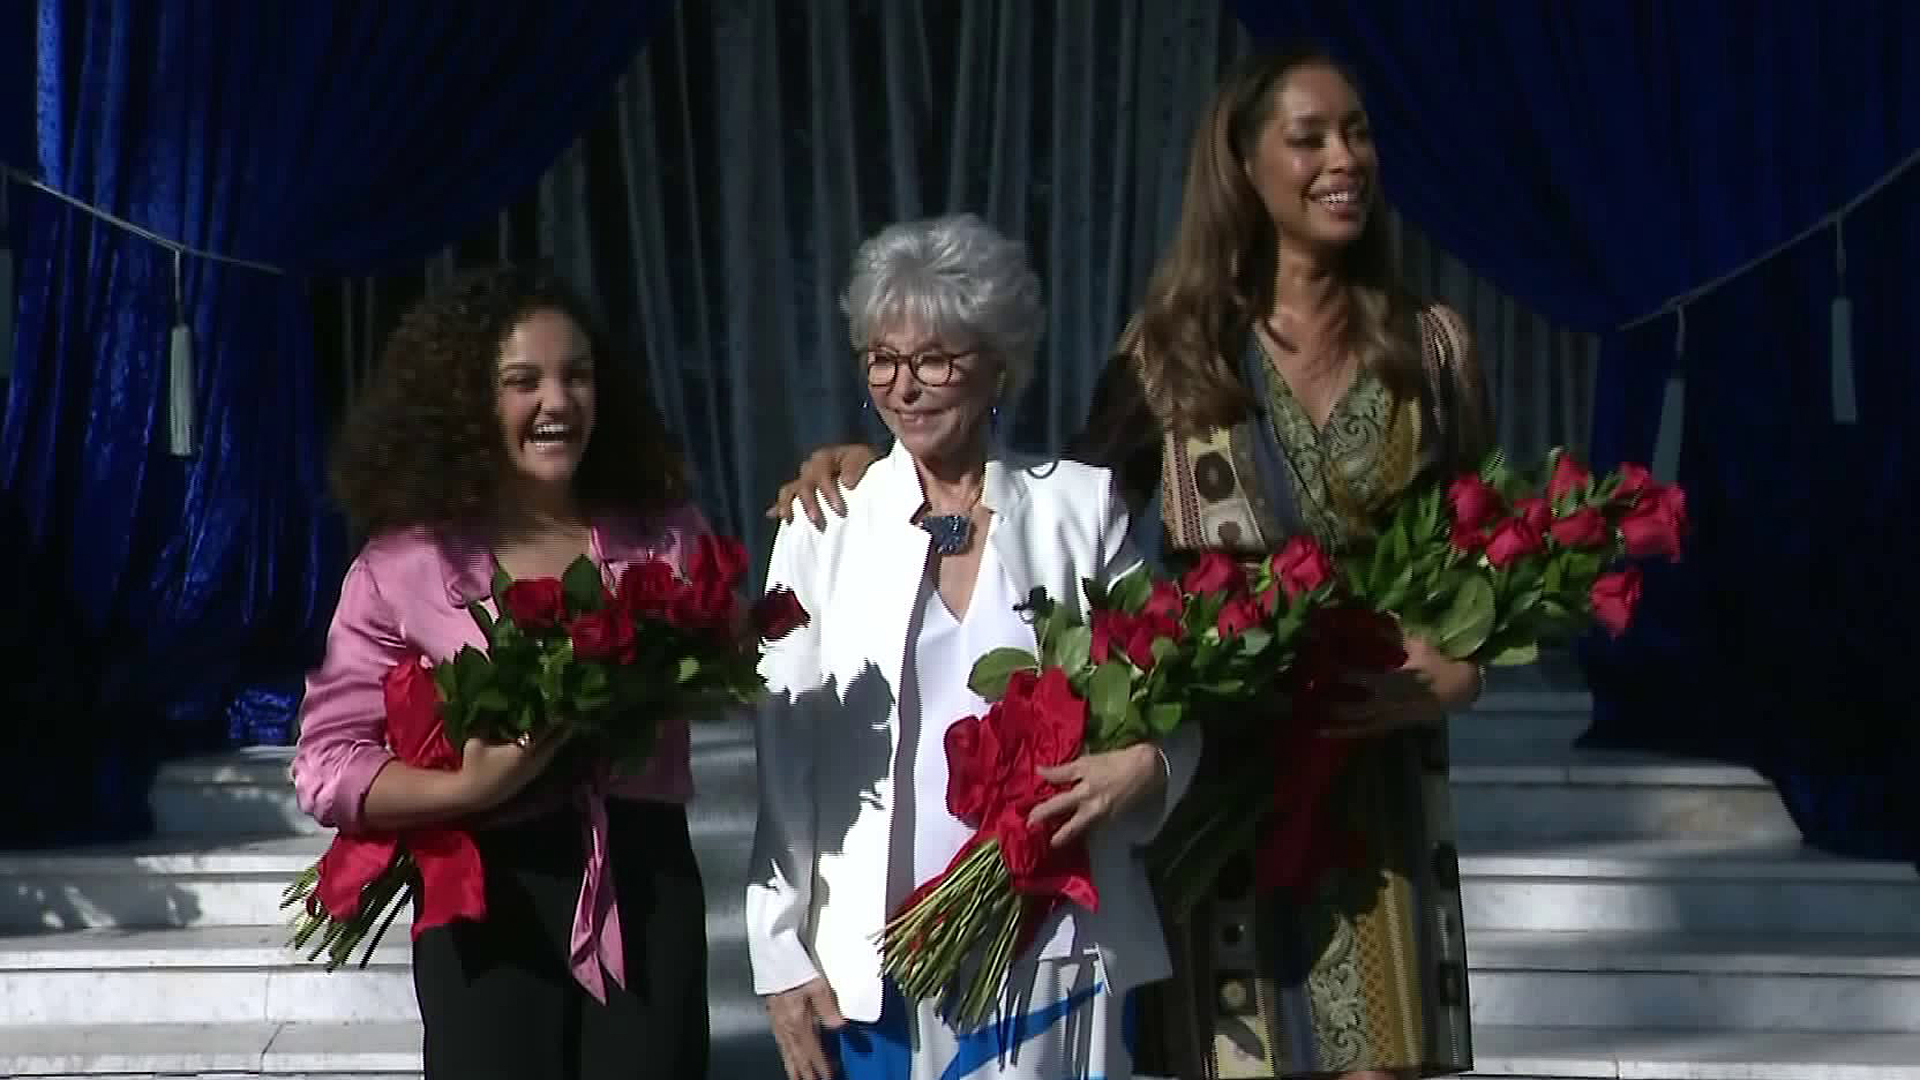 Laurie Hernandez (Left), Rita Moreno (Center) and Gina Torres were named co-grand marshals of the 2020 Tournament of Roses. (Credit: KTLA)